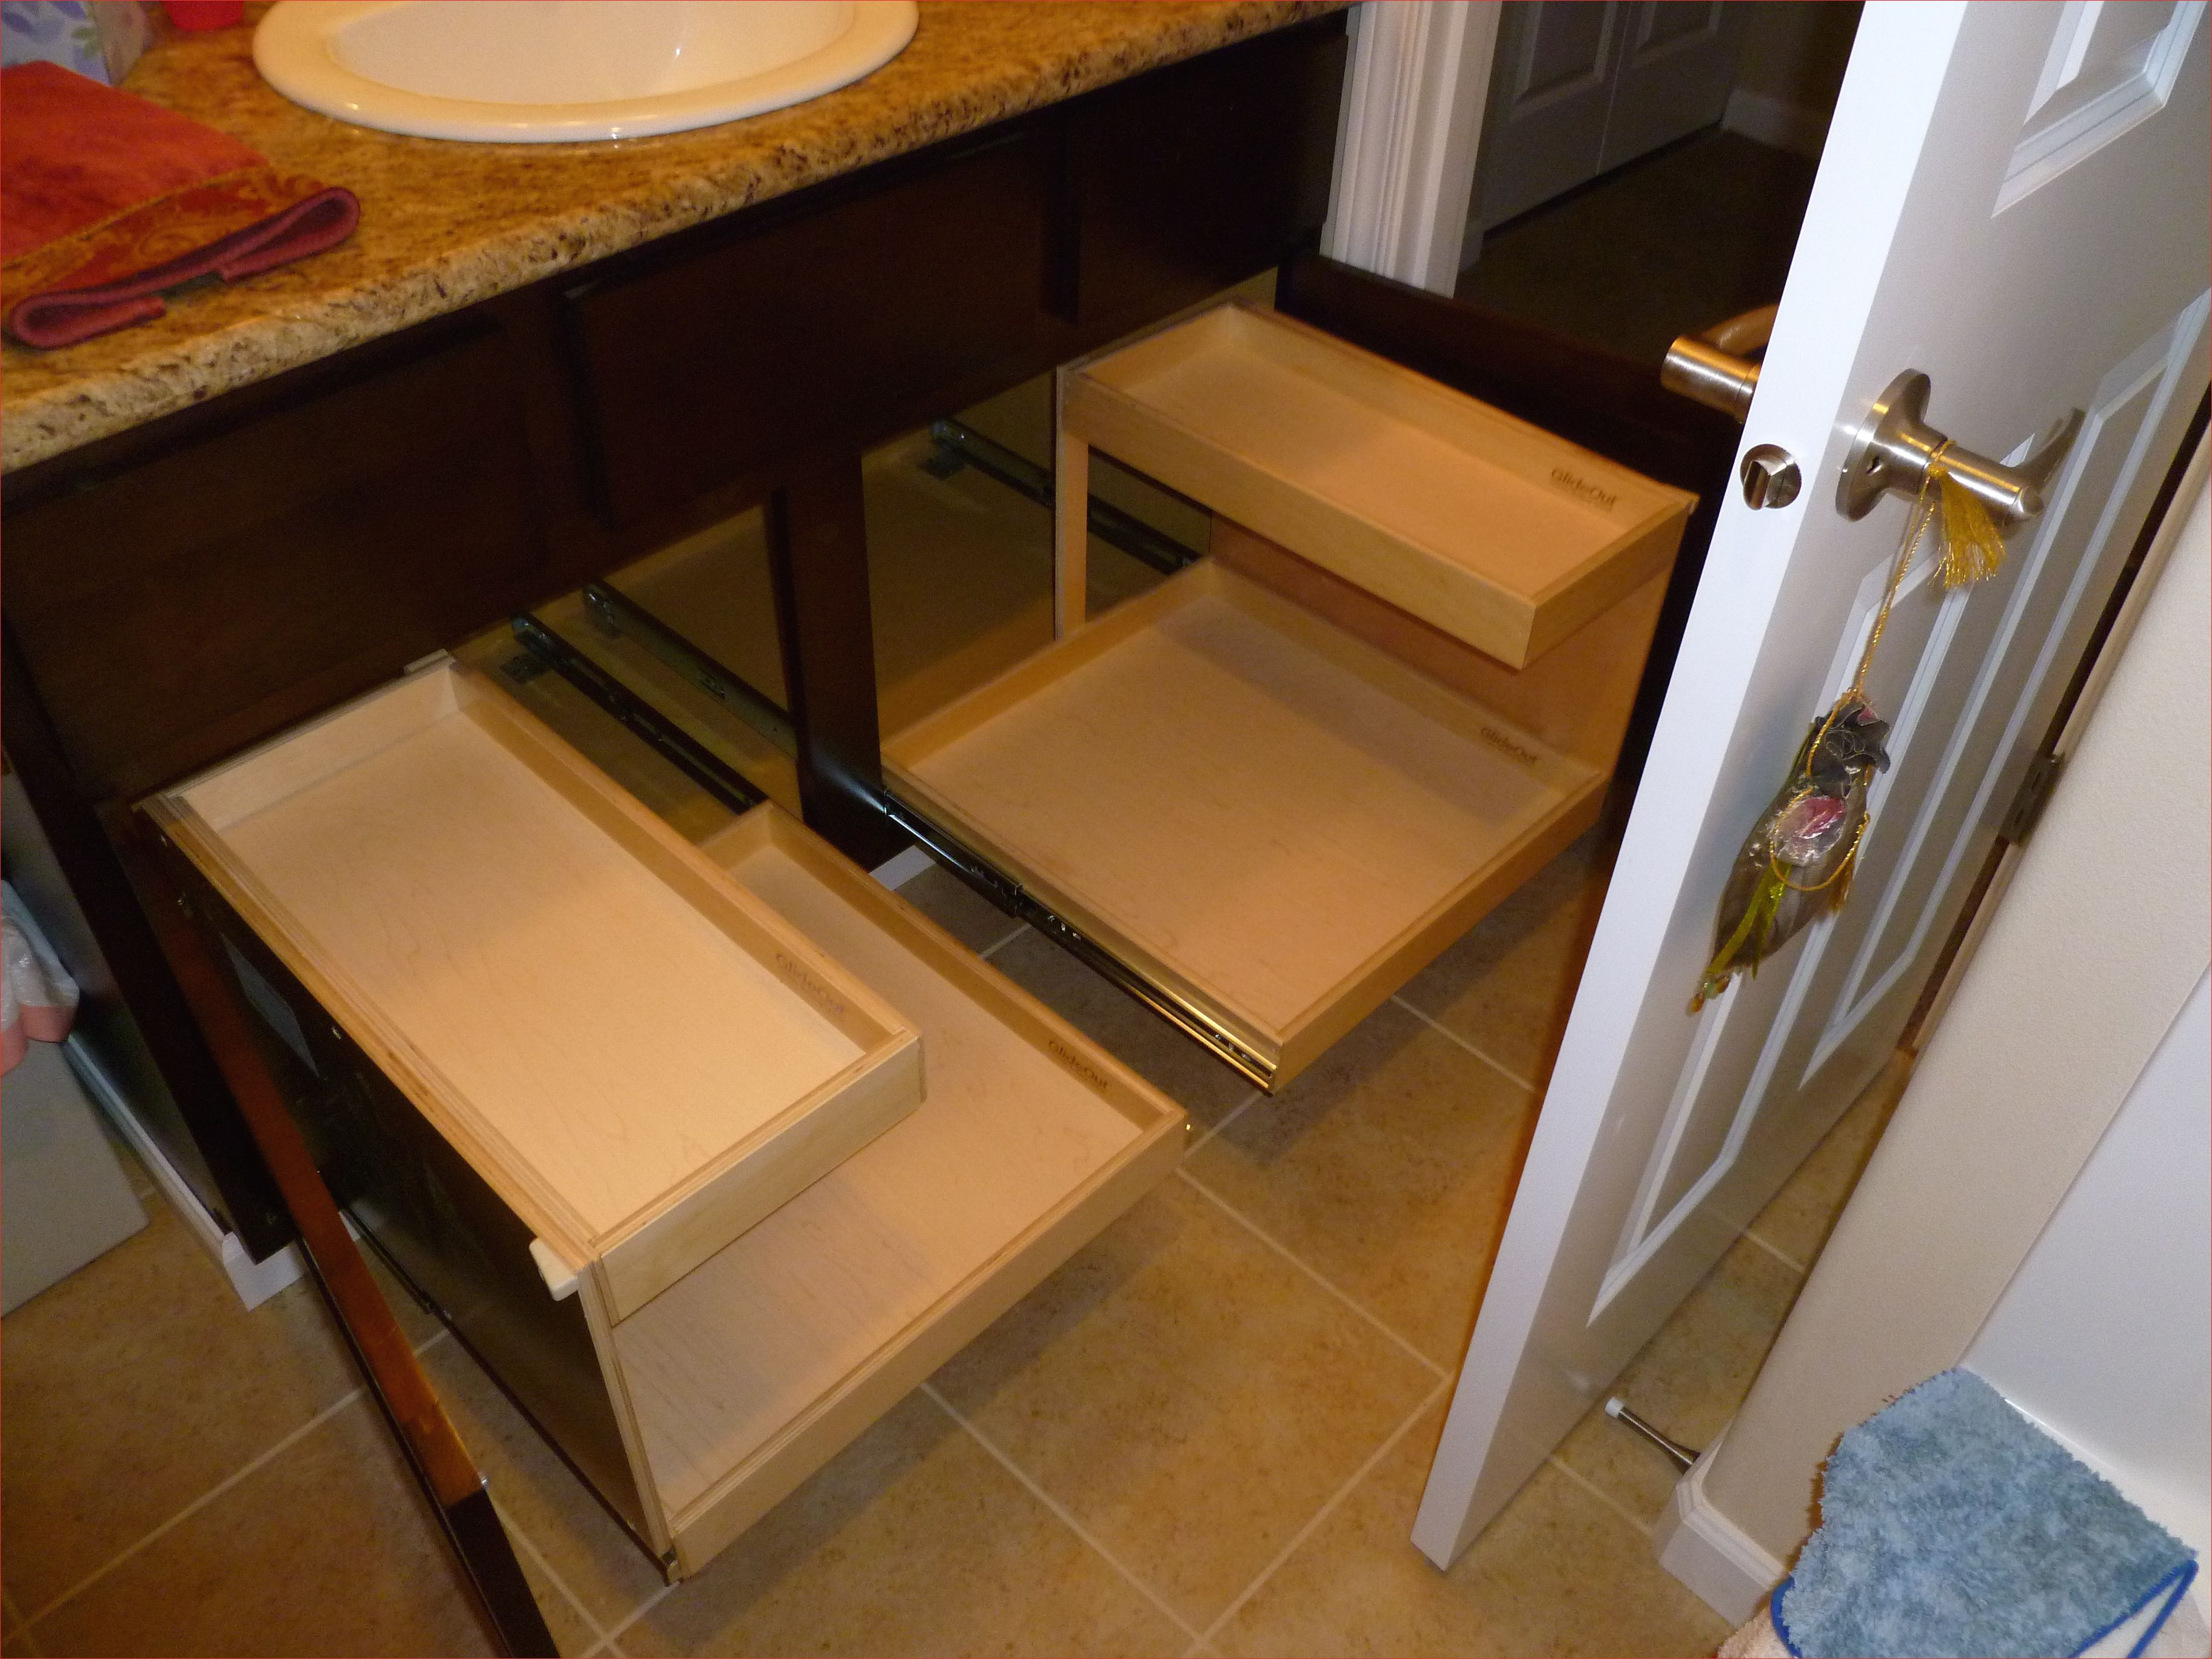 Image of: Lowes Pull Out Shelves